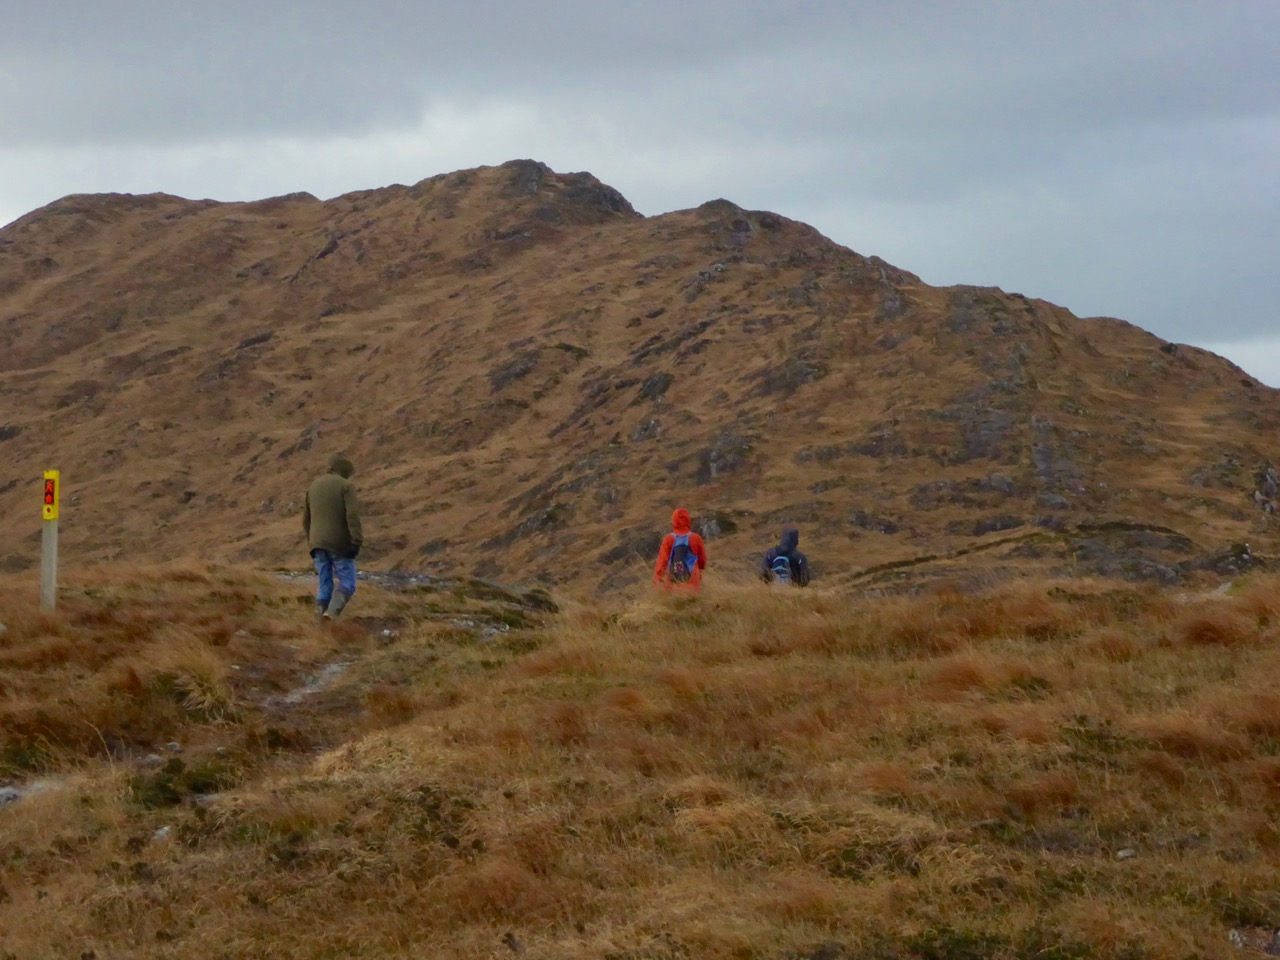 Heading towards the cairn